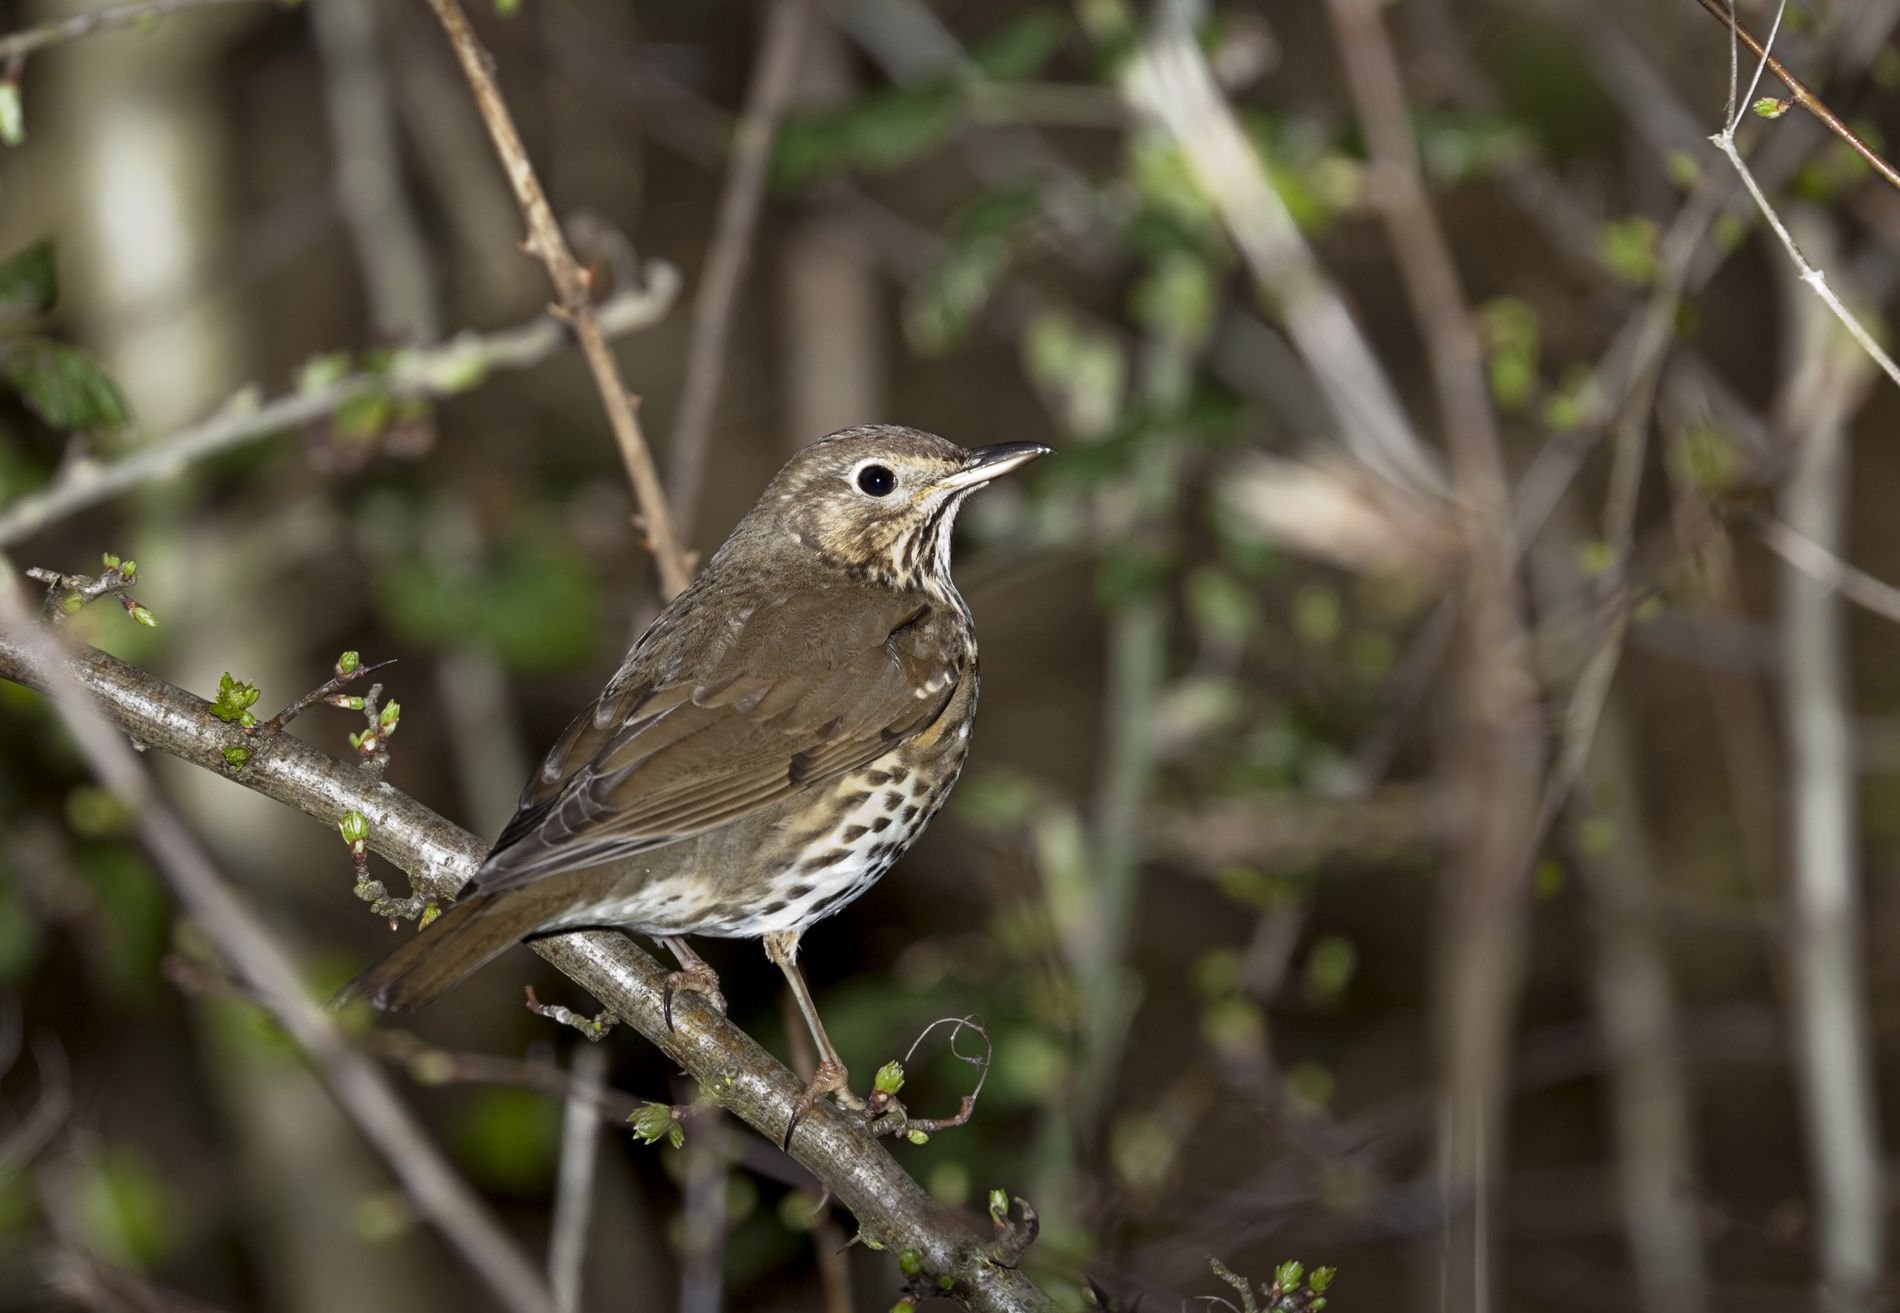 Song thrushes are in decline due to the lack of nesting sites, such as in hedgerows and trees.